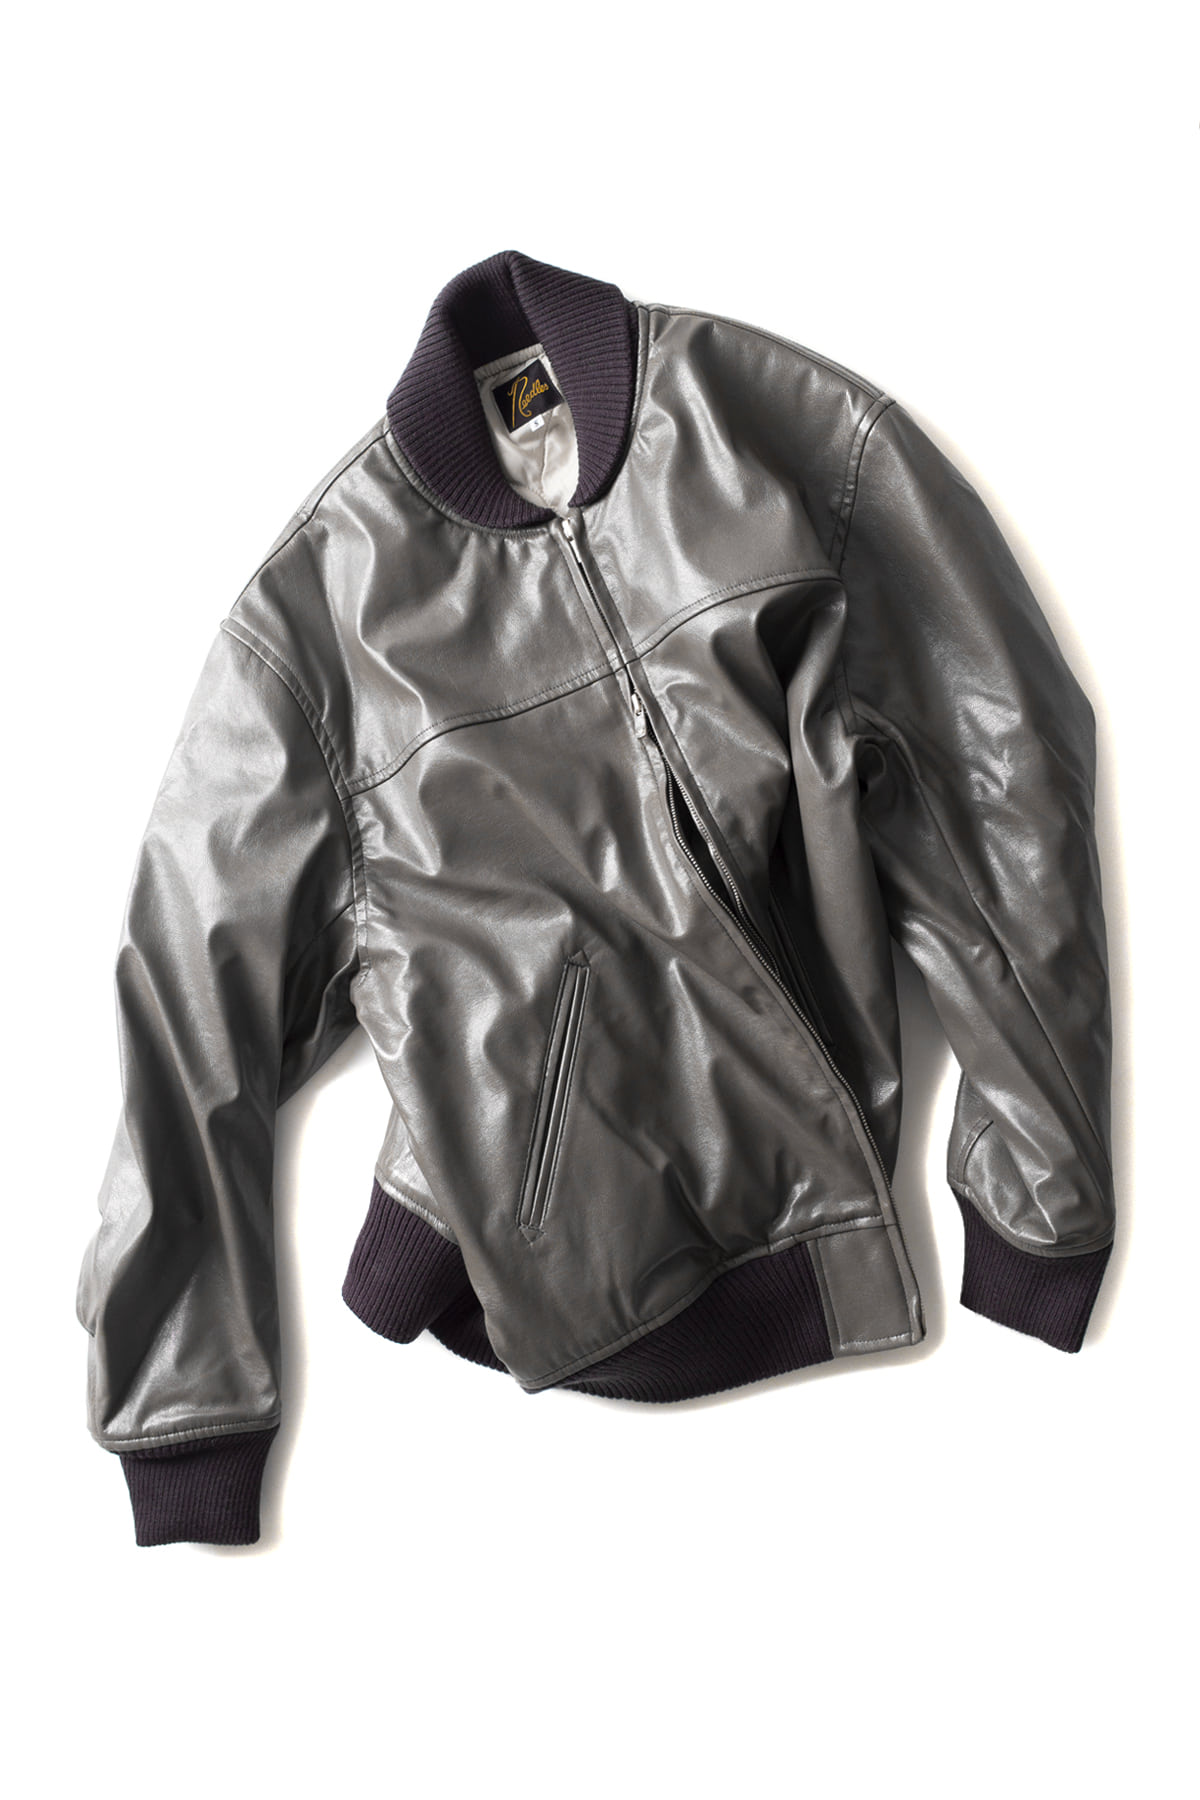 NEEDLES : Synthetic Leather G-1 Jacket (Grey)